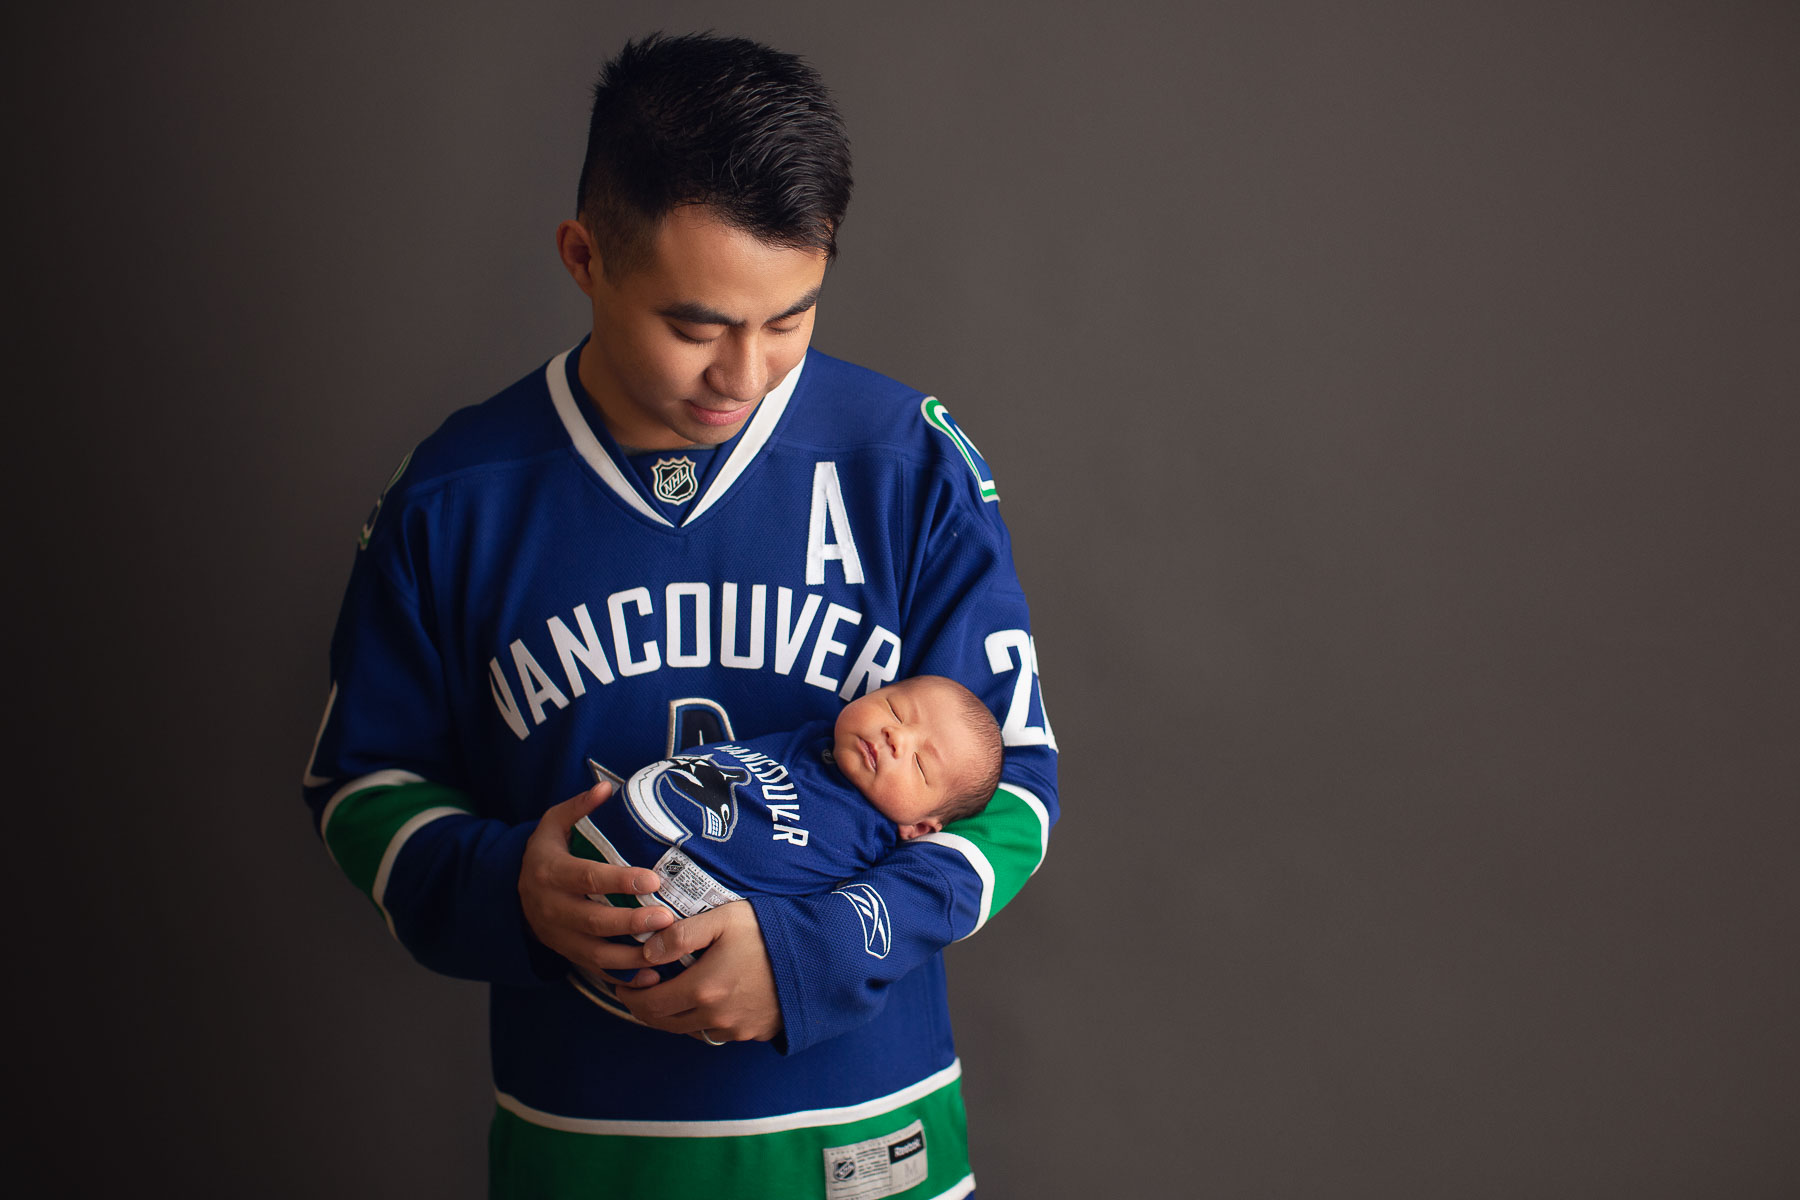 Vancouver Canucks newborn photography - daddy and son Canucks outfit